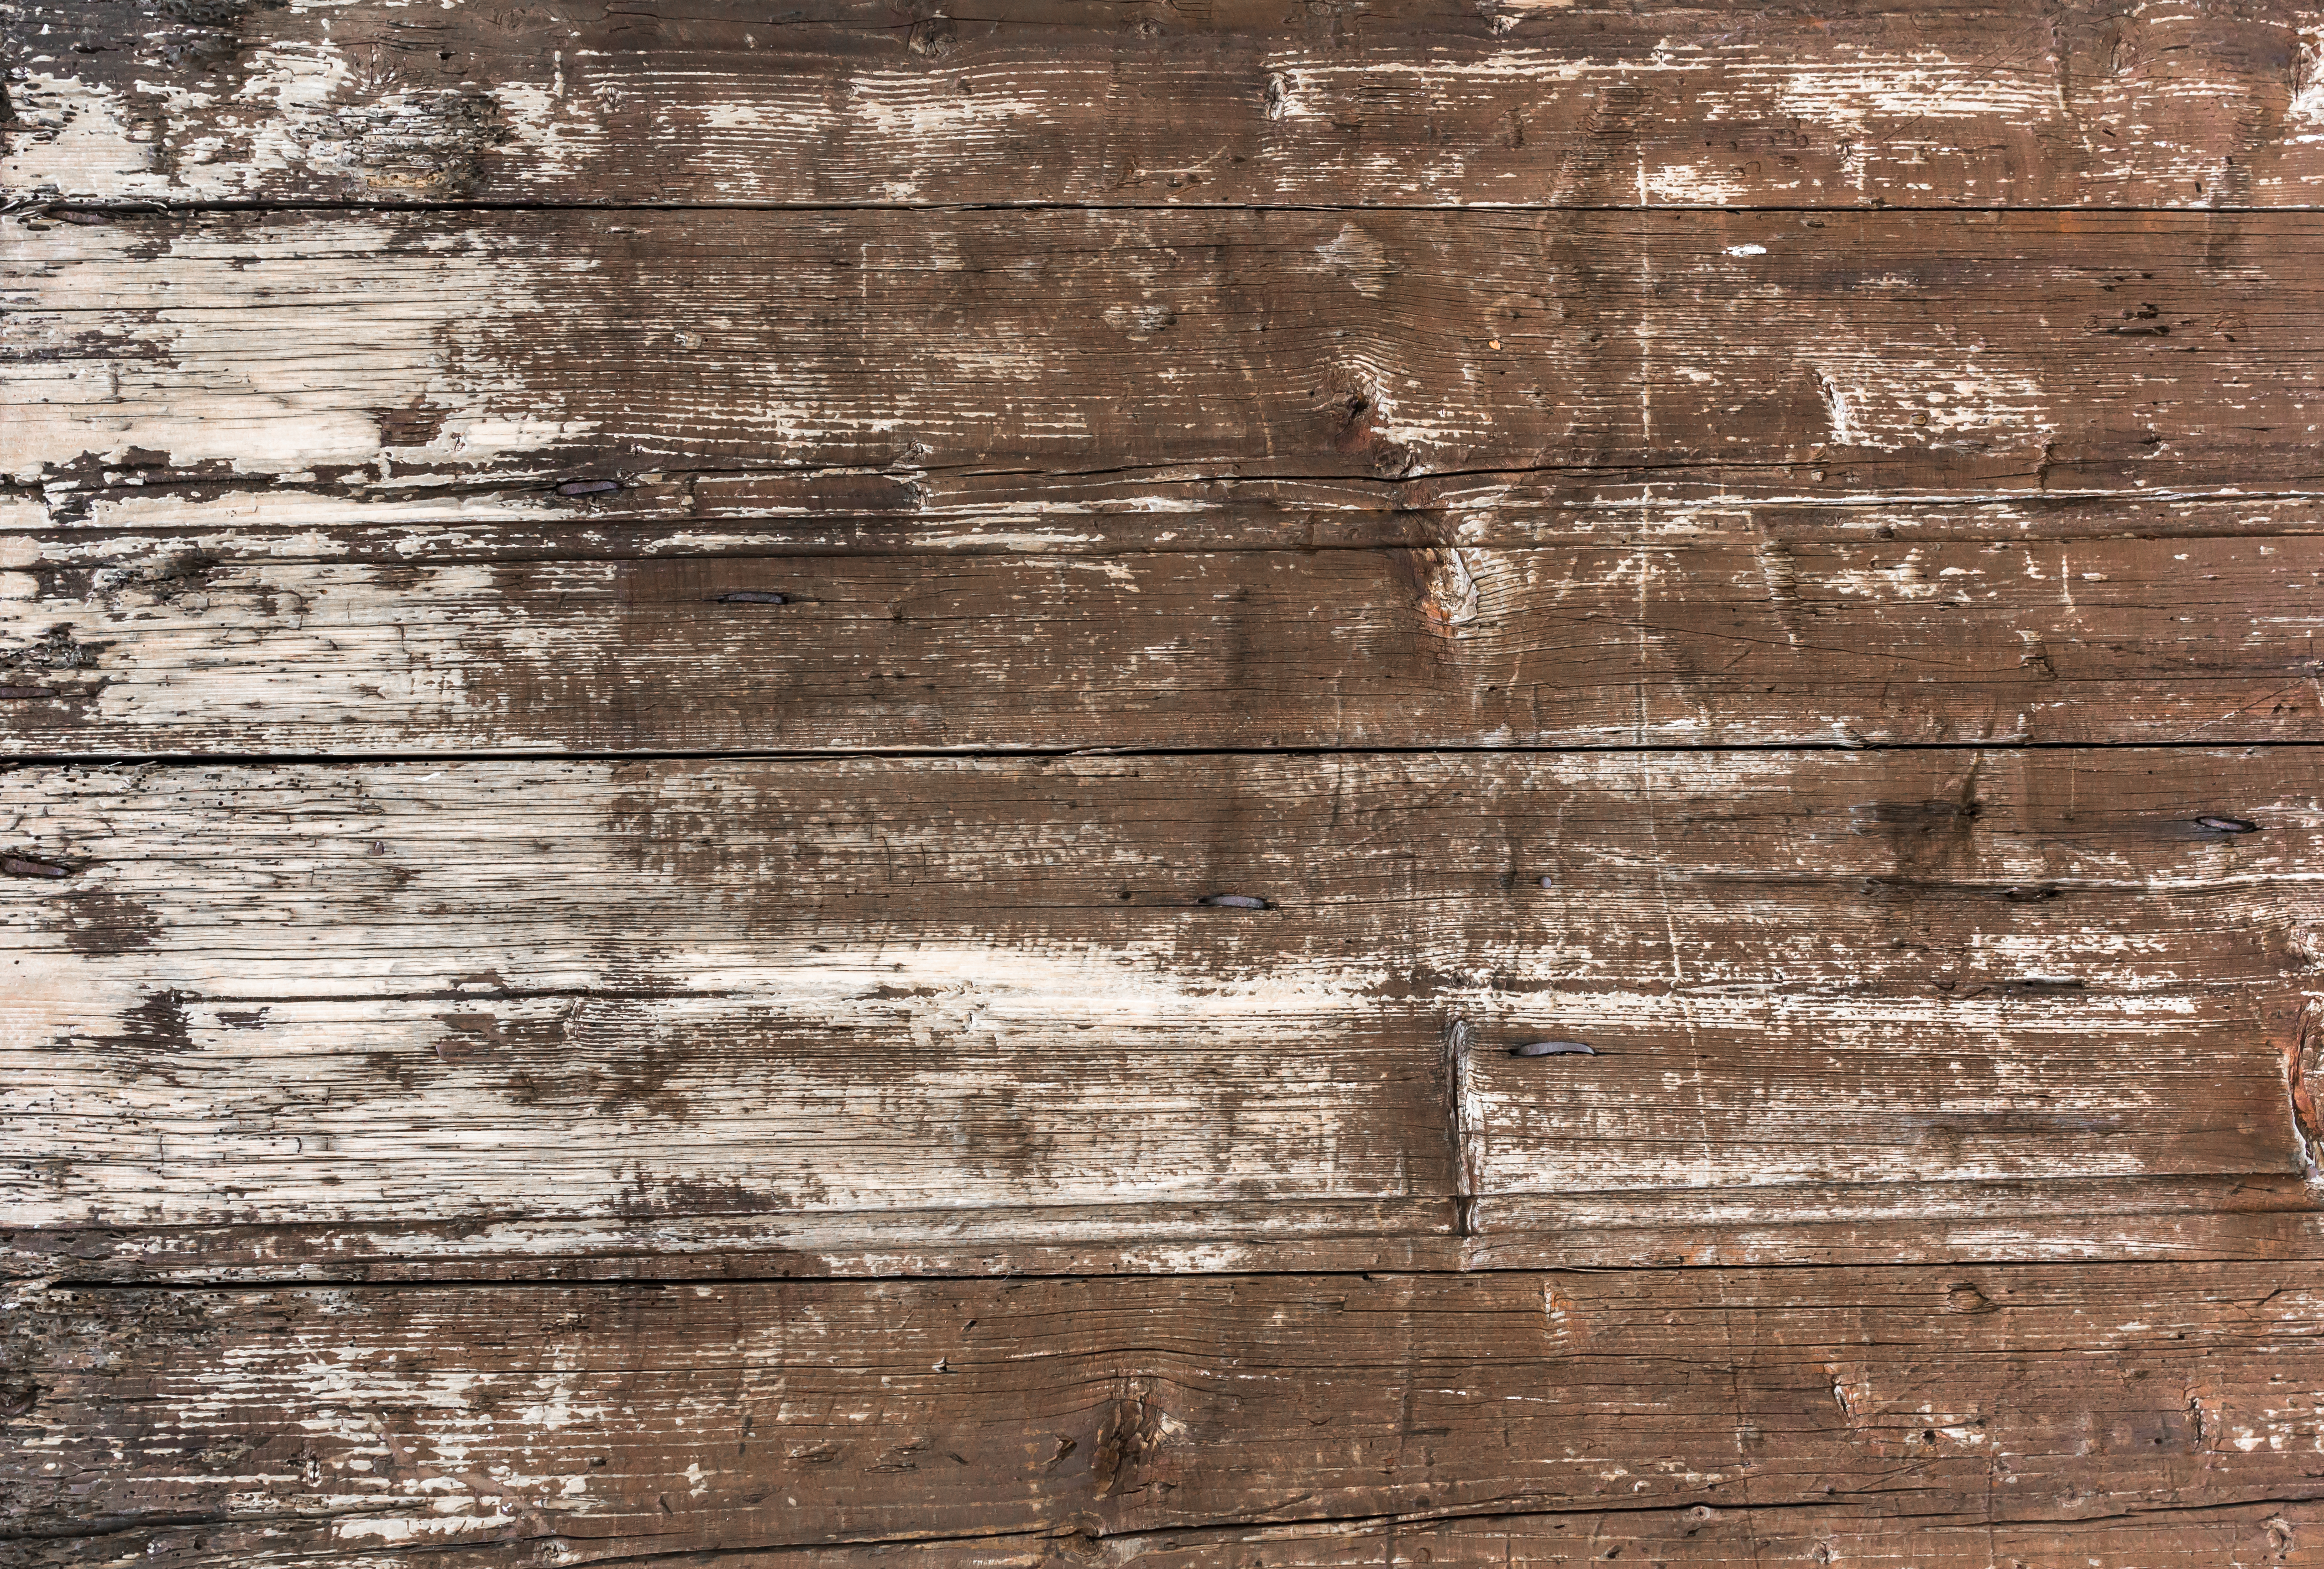 Does Stained Wood Have To Be Stripped Before Painting